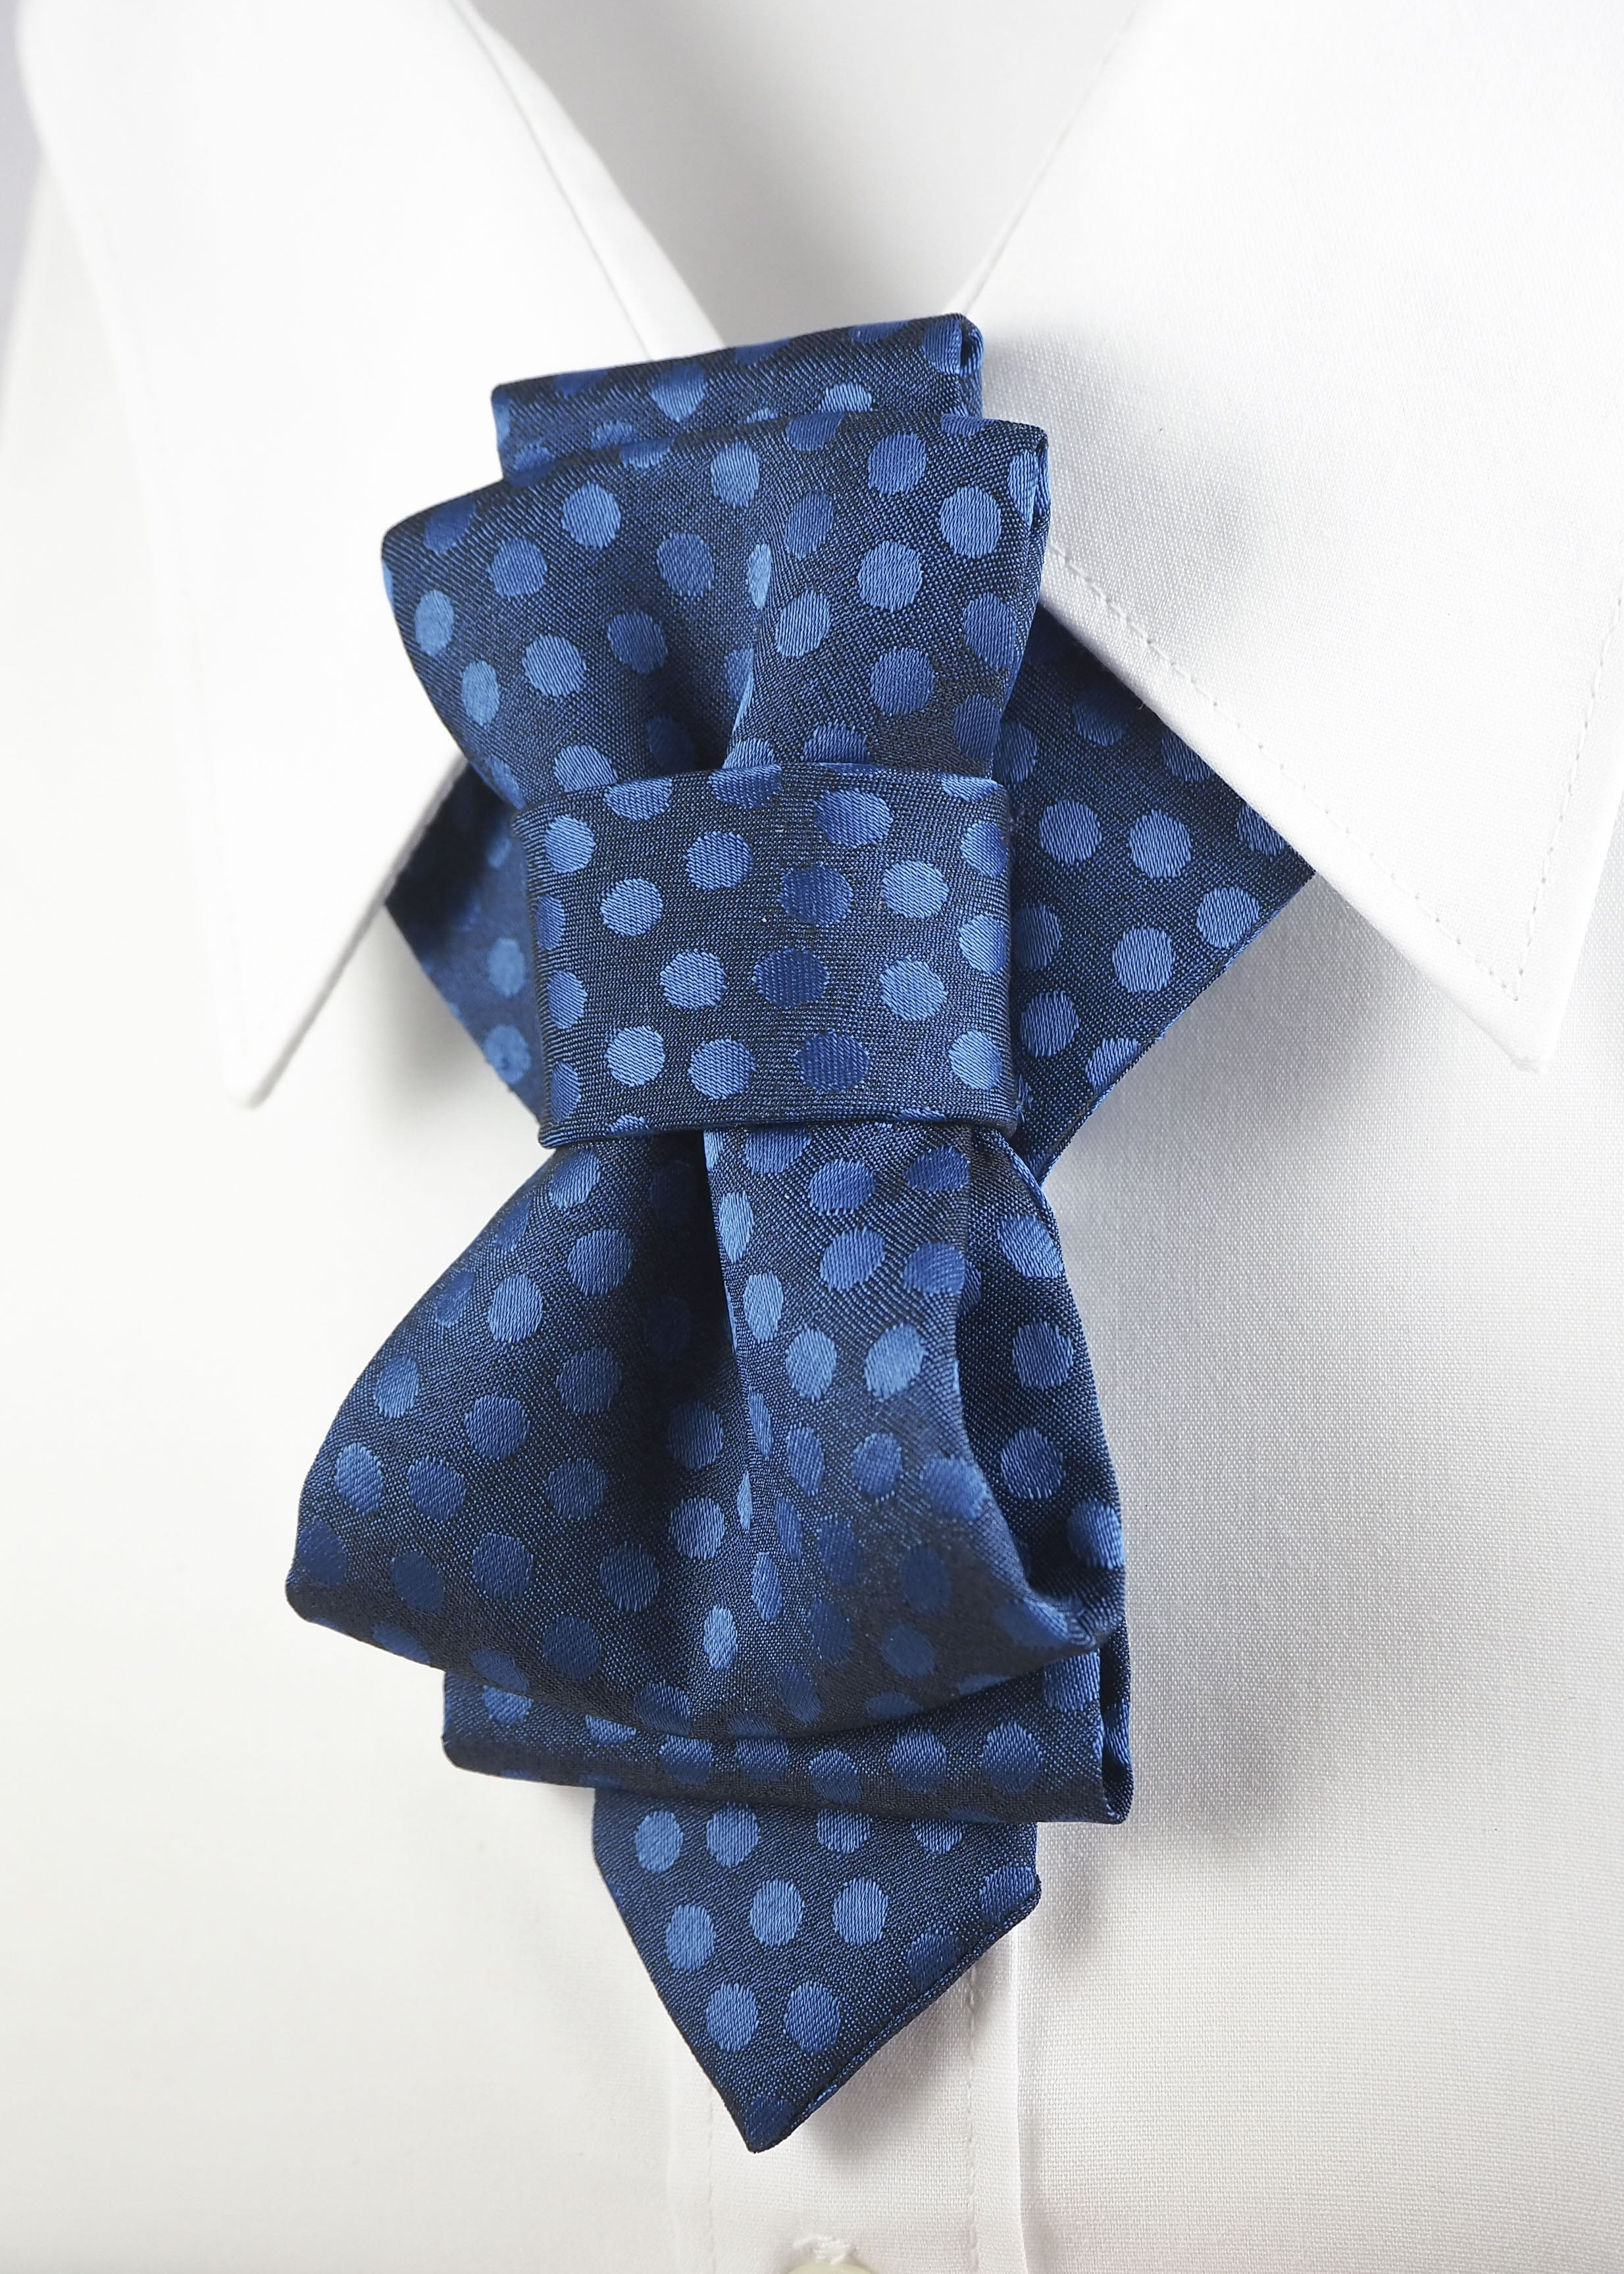 Bow Tie, Tie for wedding suite BLUE CHAMPAGNE hopper tie Bow tie